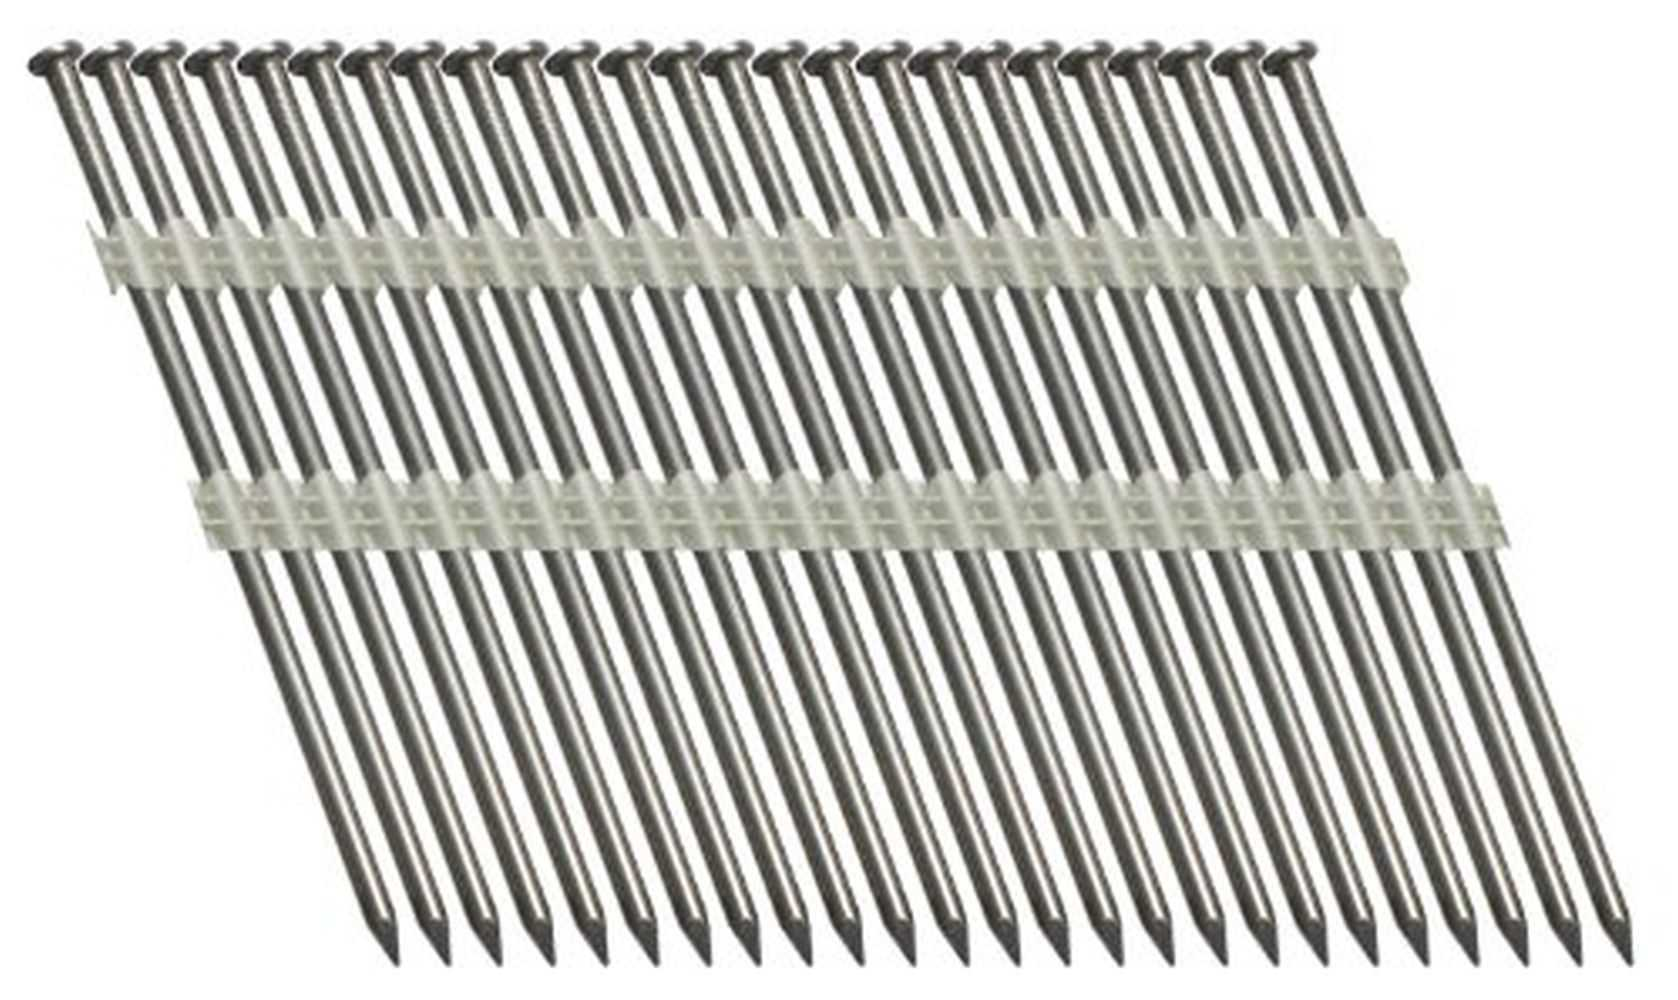 Fasco FP636520E 6-1/4'x.165' Jumbo Nails-Fasco&Bostitch BigBerta Nailers,660-pc